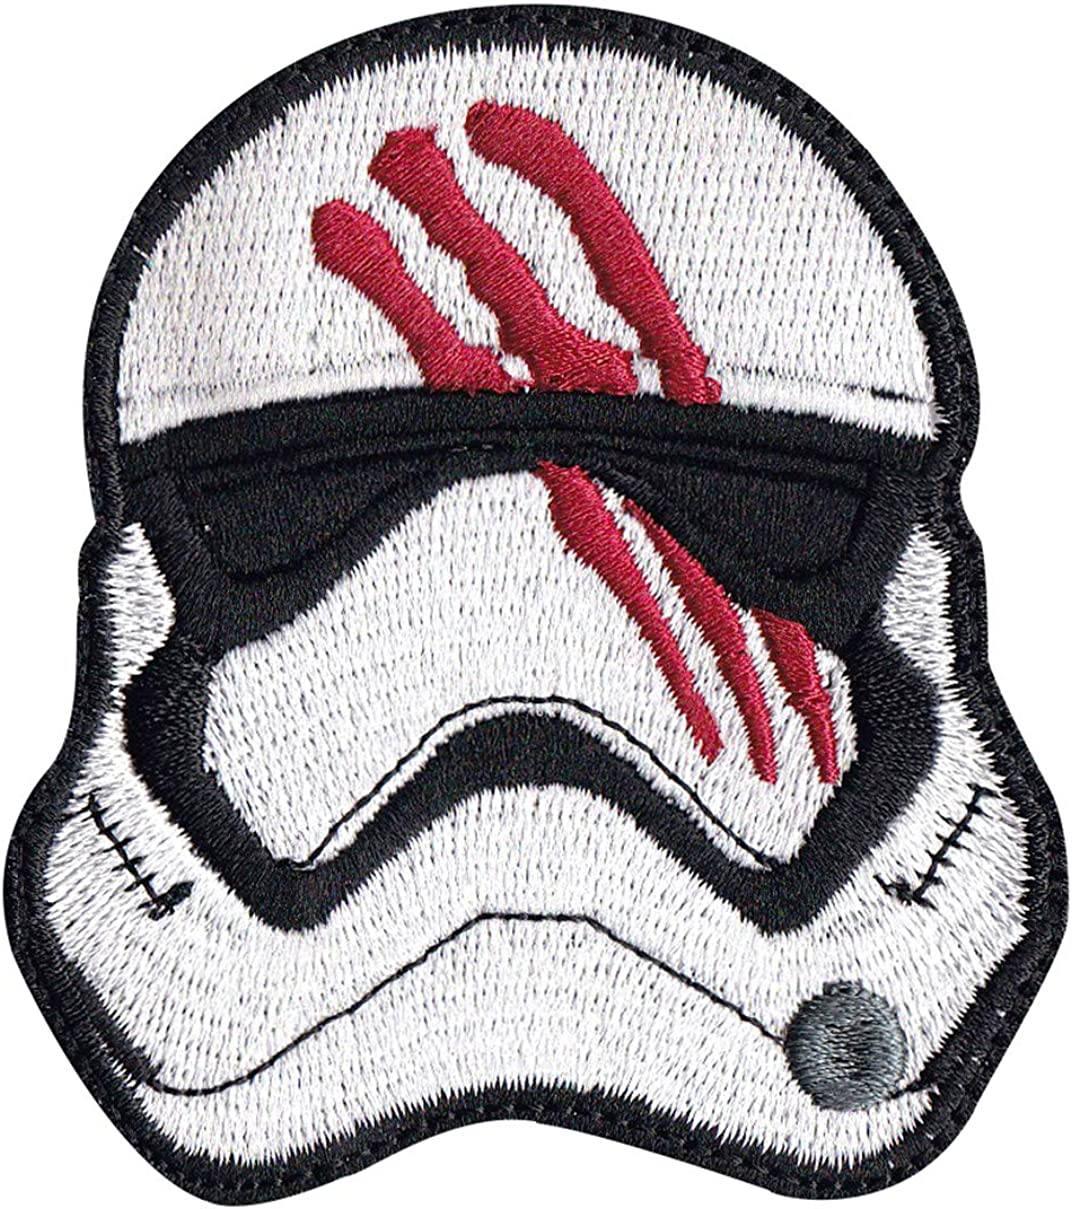 Force Awakens Finn Fn8 Storm Blood excellence Patch Max 77% OFF Mask Trooper